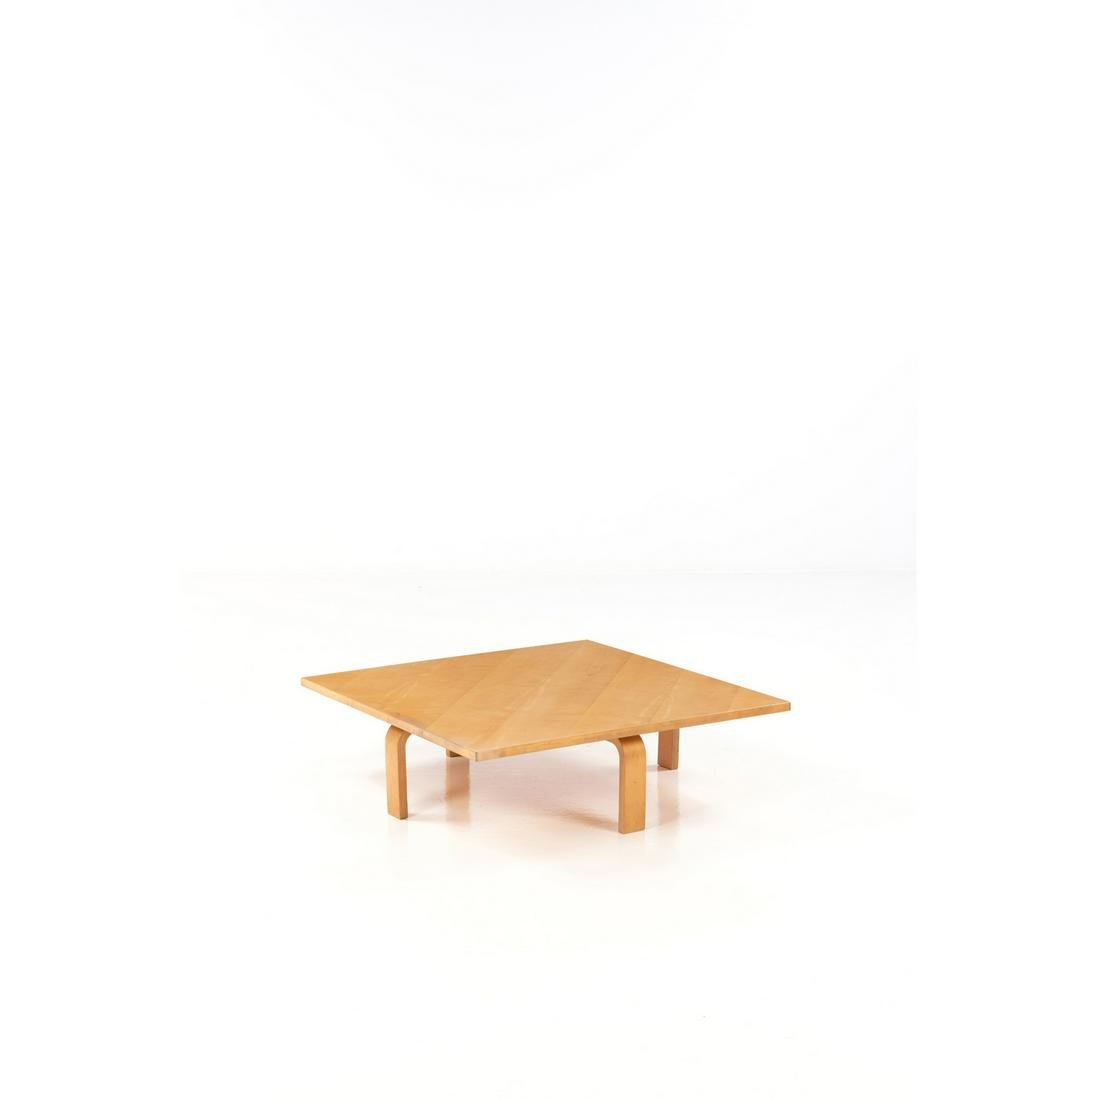 Poul Kjaerholm (1929-1980) Model no. PK 66 Coffee table